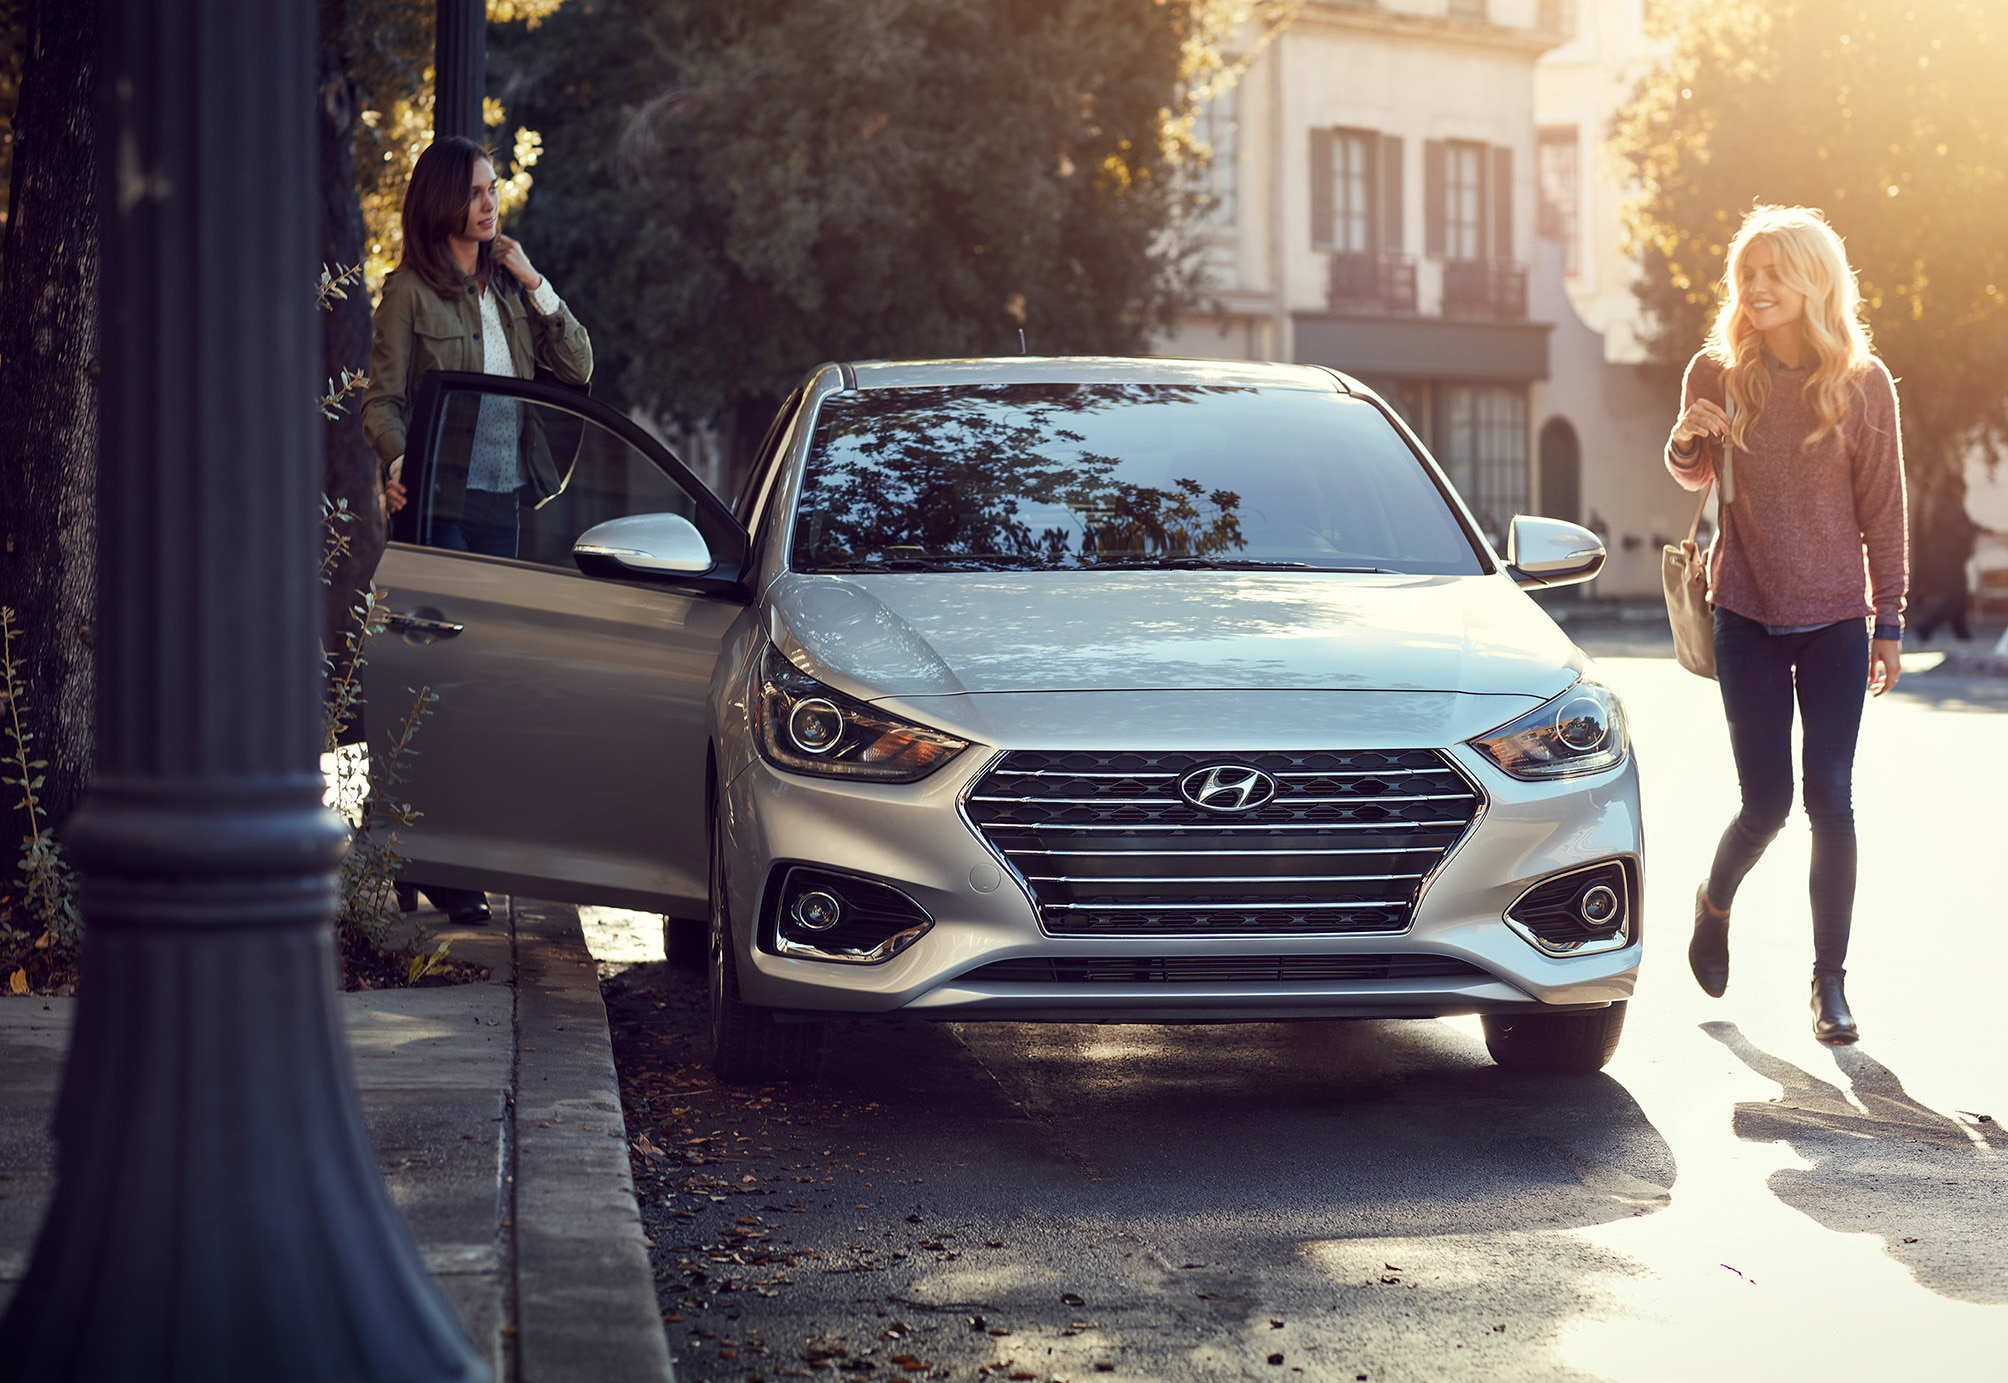 Woman opening door of the hyundai